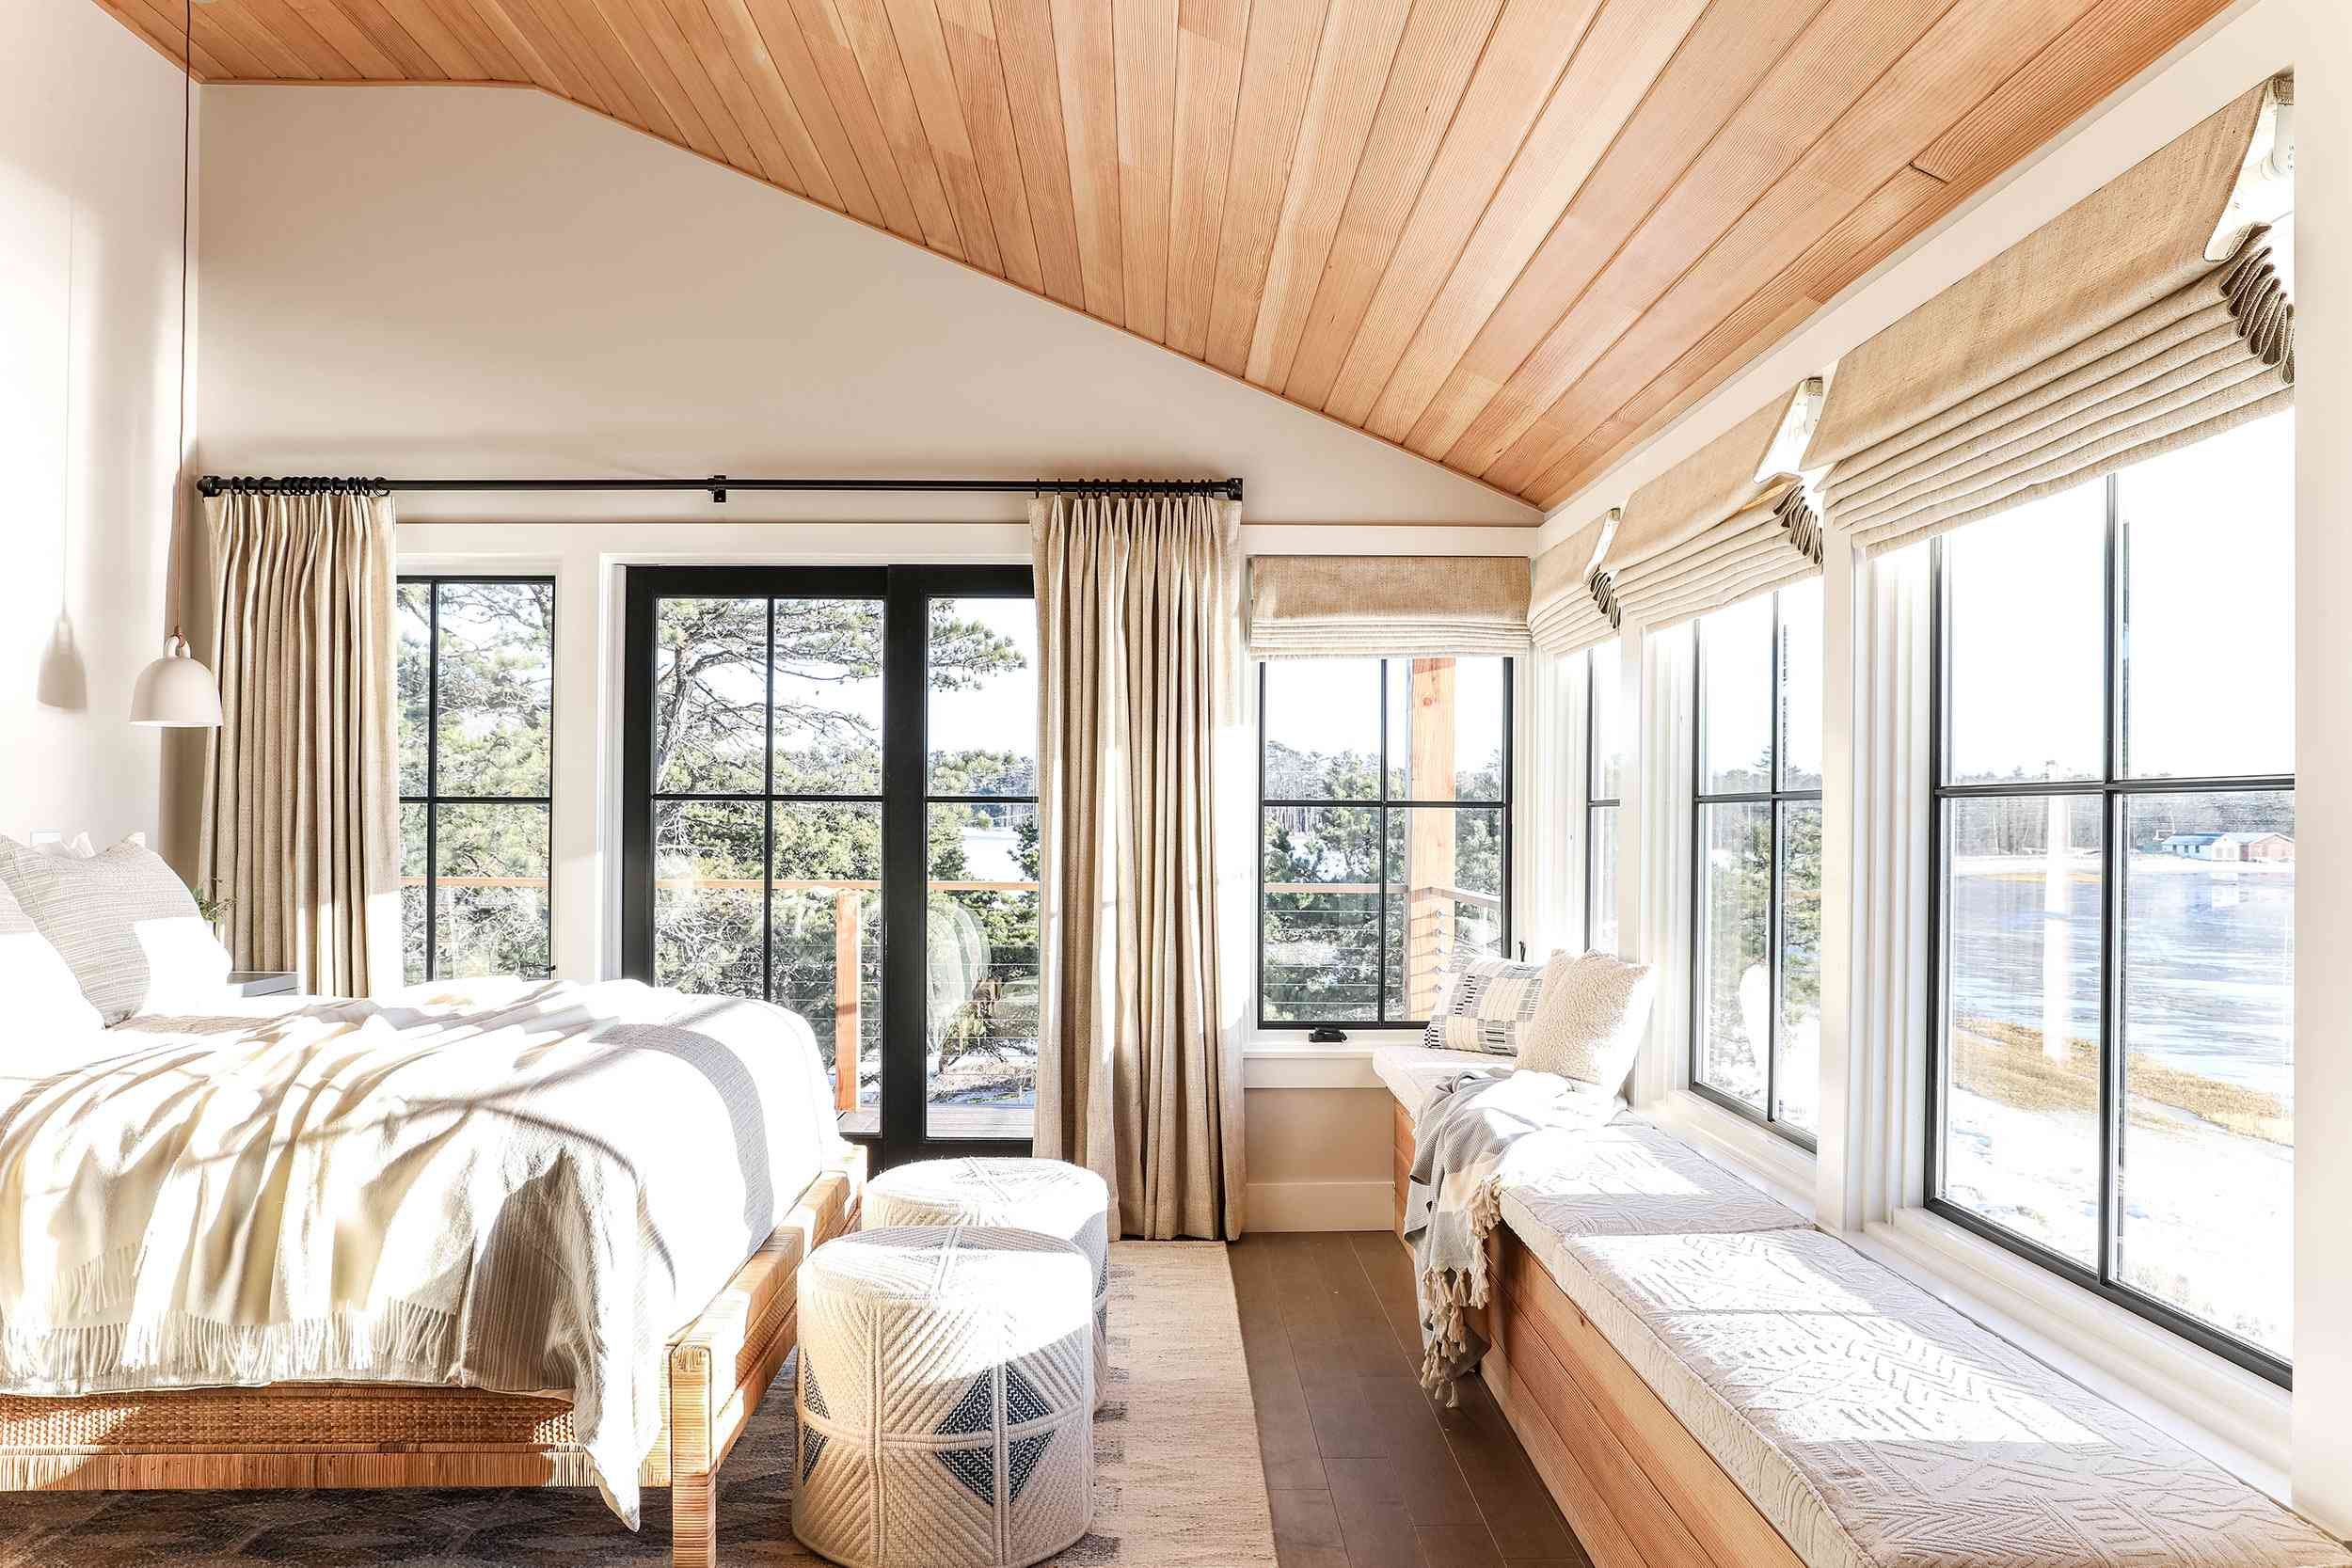 A window-filled bedroom with ivory drapes